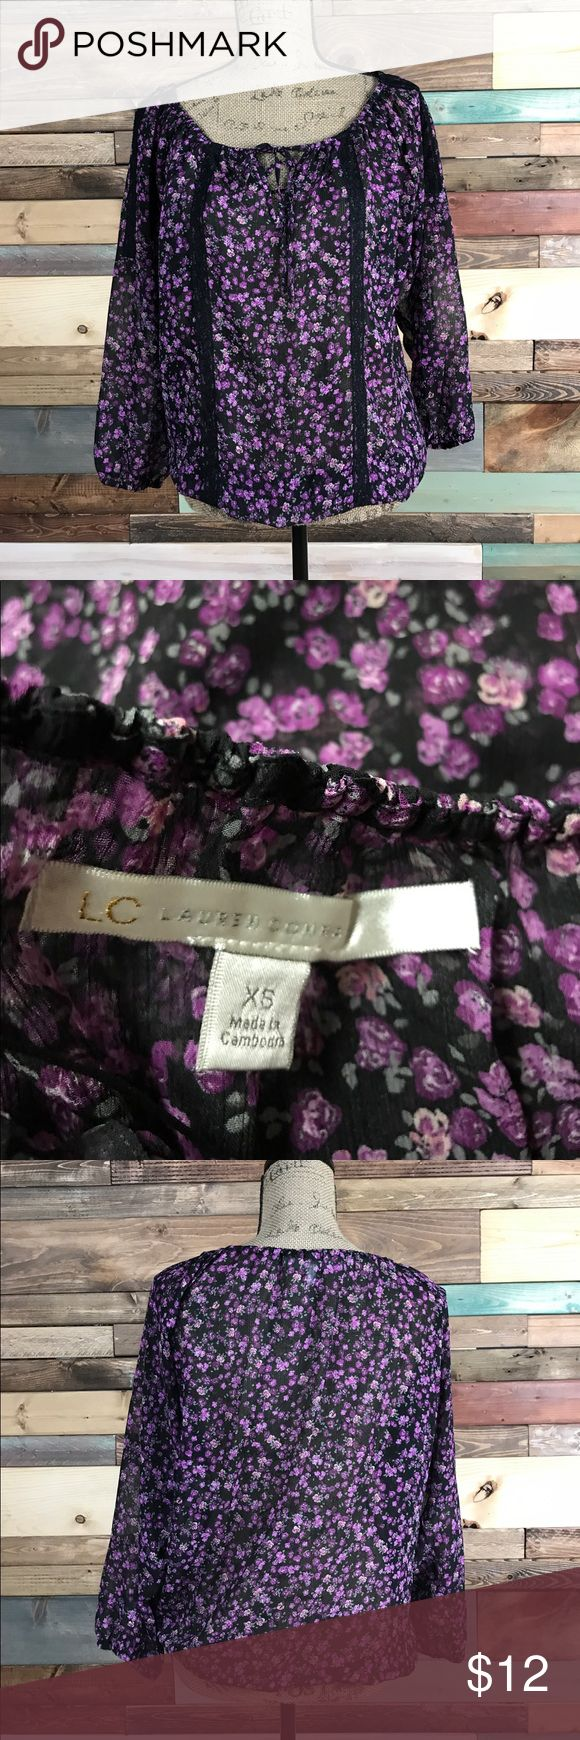 """LC Lauren Conrad Black Floral Blouse XS LC Lauren Conrad Black Floral Blouse XS // Bust: 21"""" / Length: 25"""" // Bundle your likes and make an offer for best deals @woodsnap! LC Lauren Conrad Tops Blouses"""